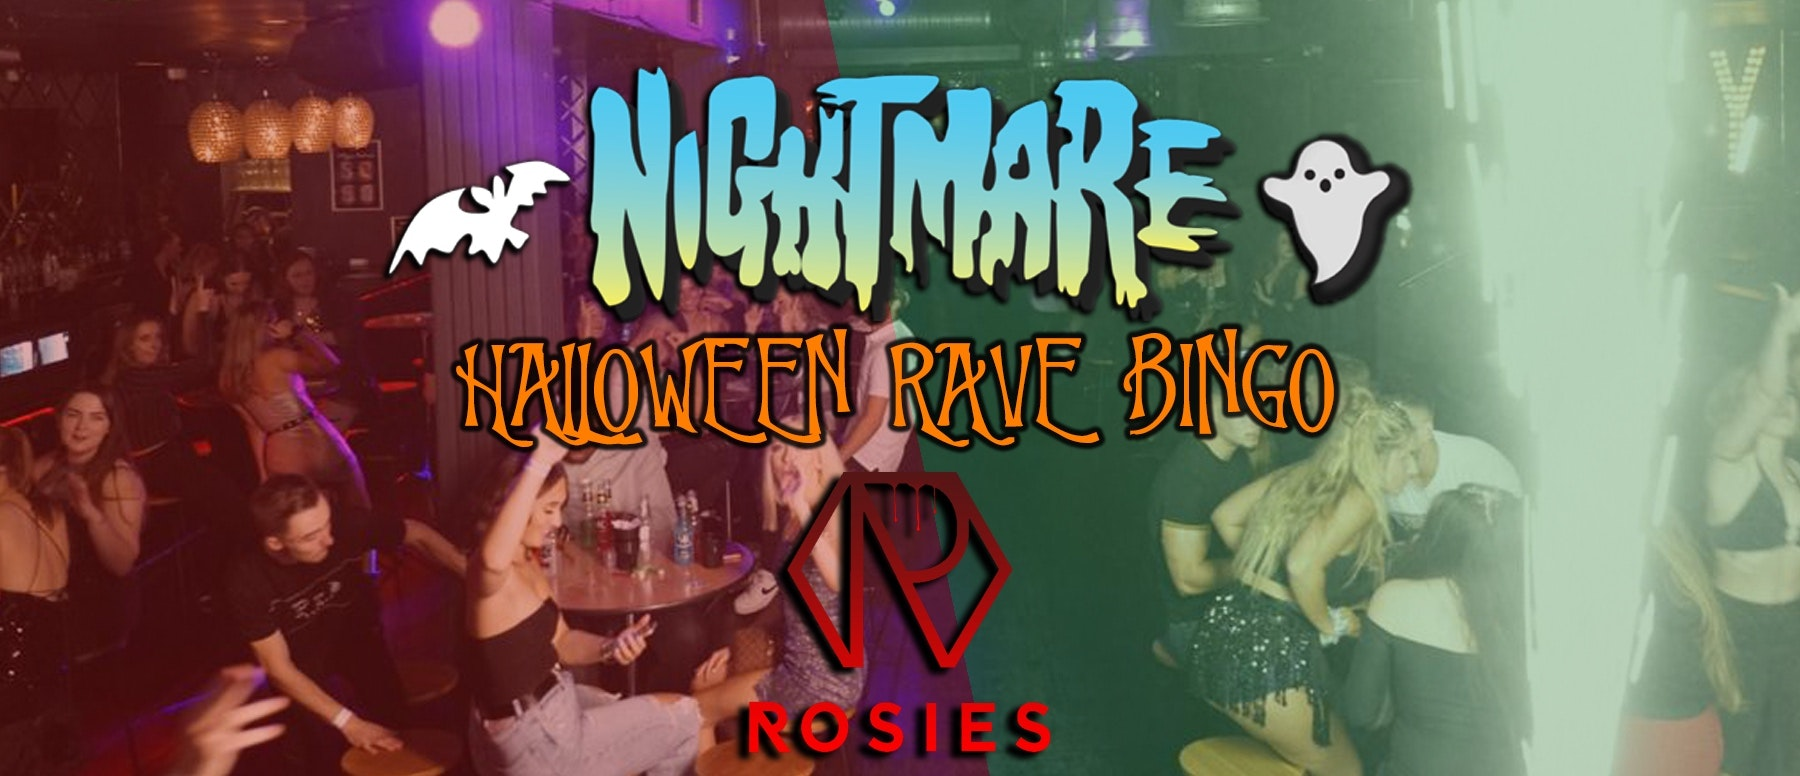 Nightmare Halloween Rave Bingo! Halloween Day Session – Rosies!